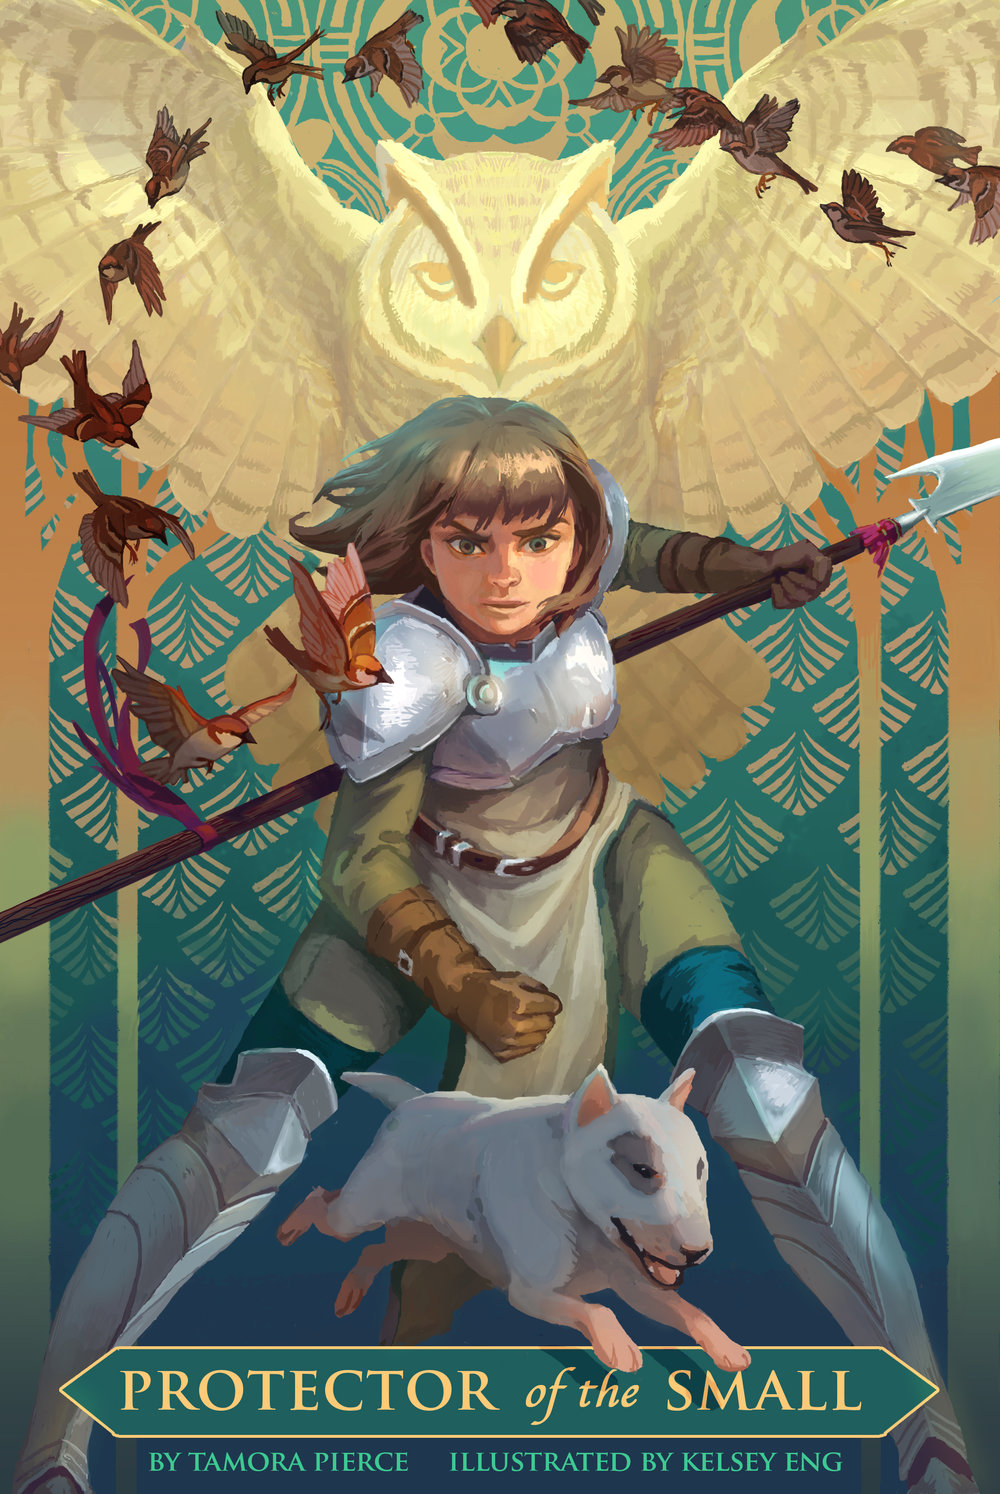 Book Cover Art Zip ~ Kelsey eng illustration